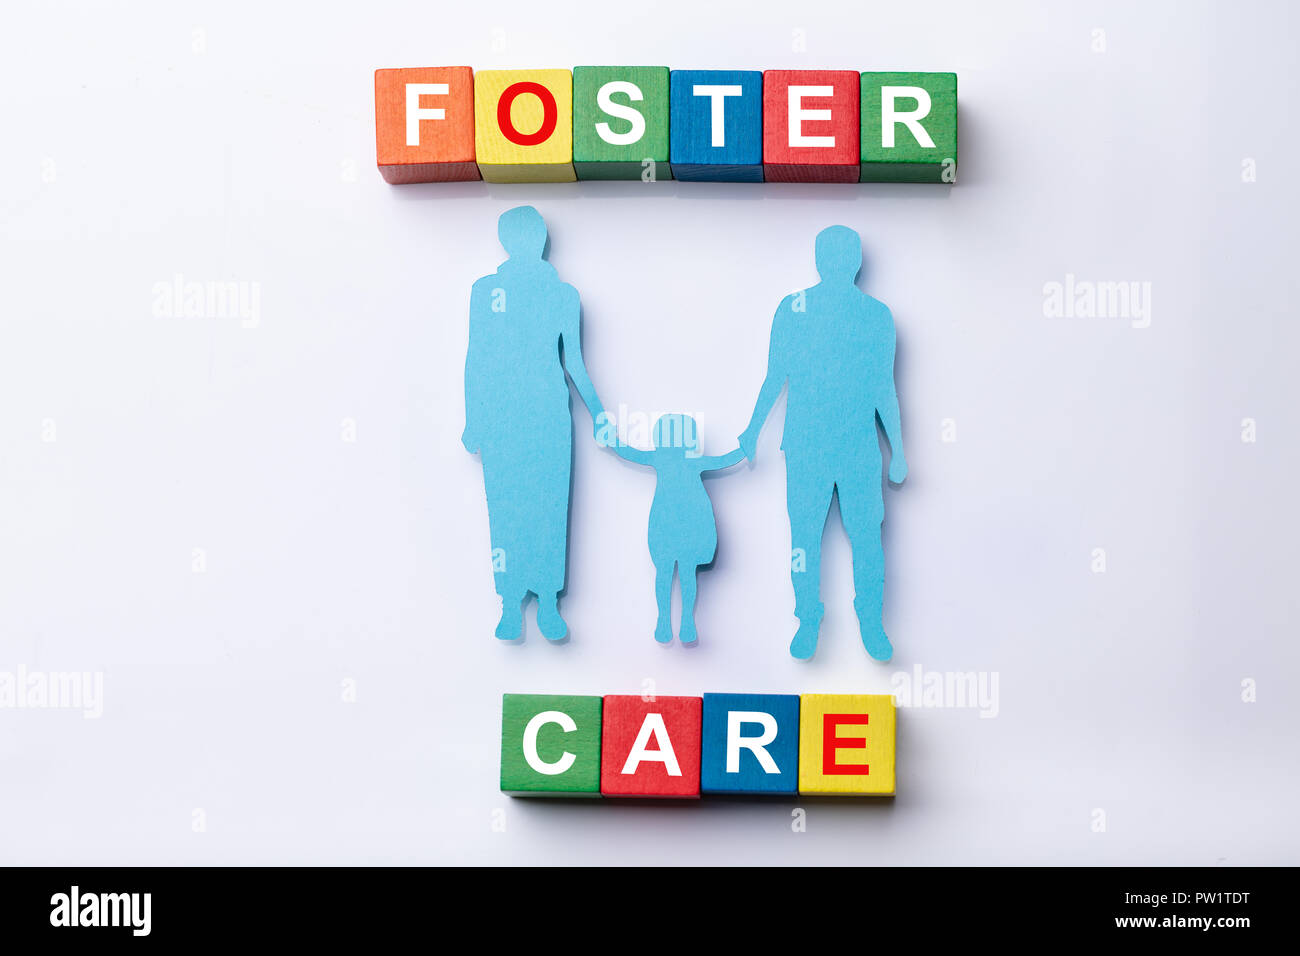 Multi Colored Foster Care Cubic Blocks With Family Figures On White Background - Stock Image